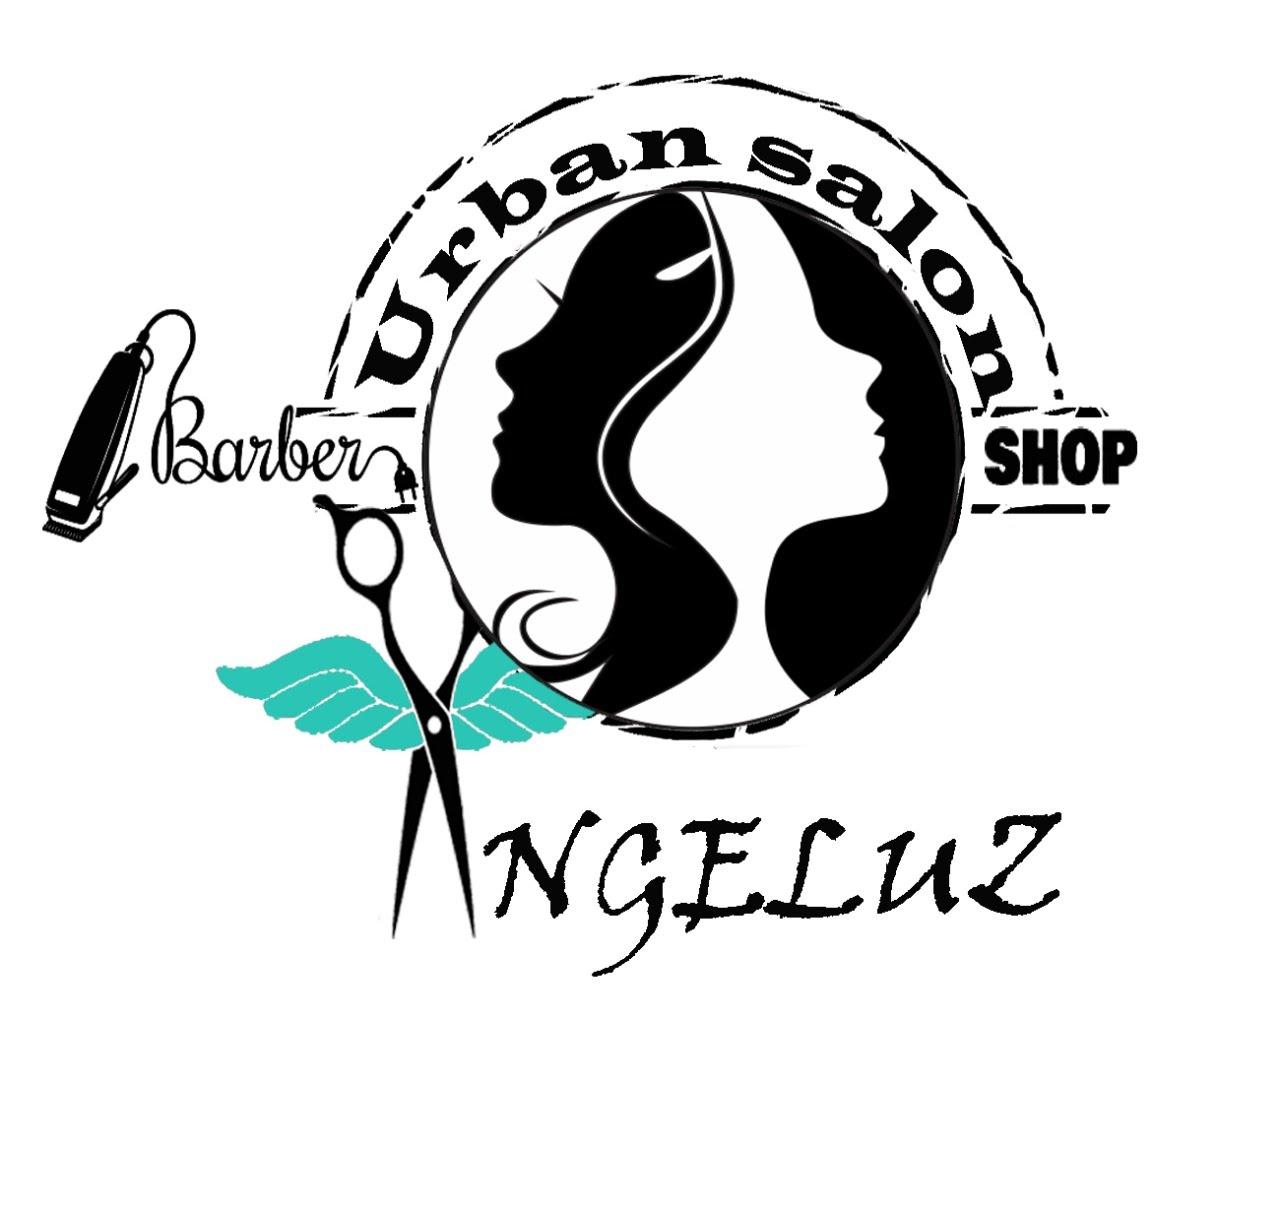 URBAN SALON & BARBER SHOP ANGELUZ